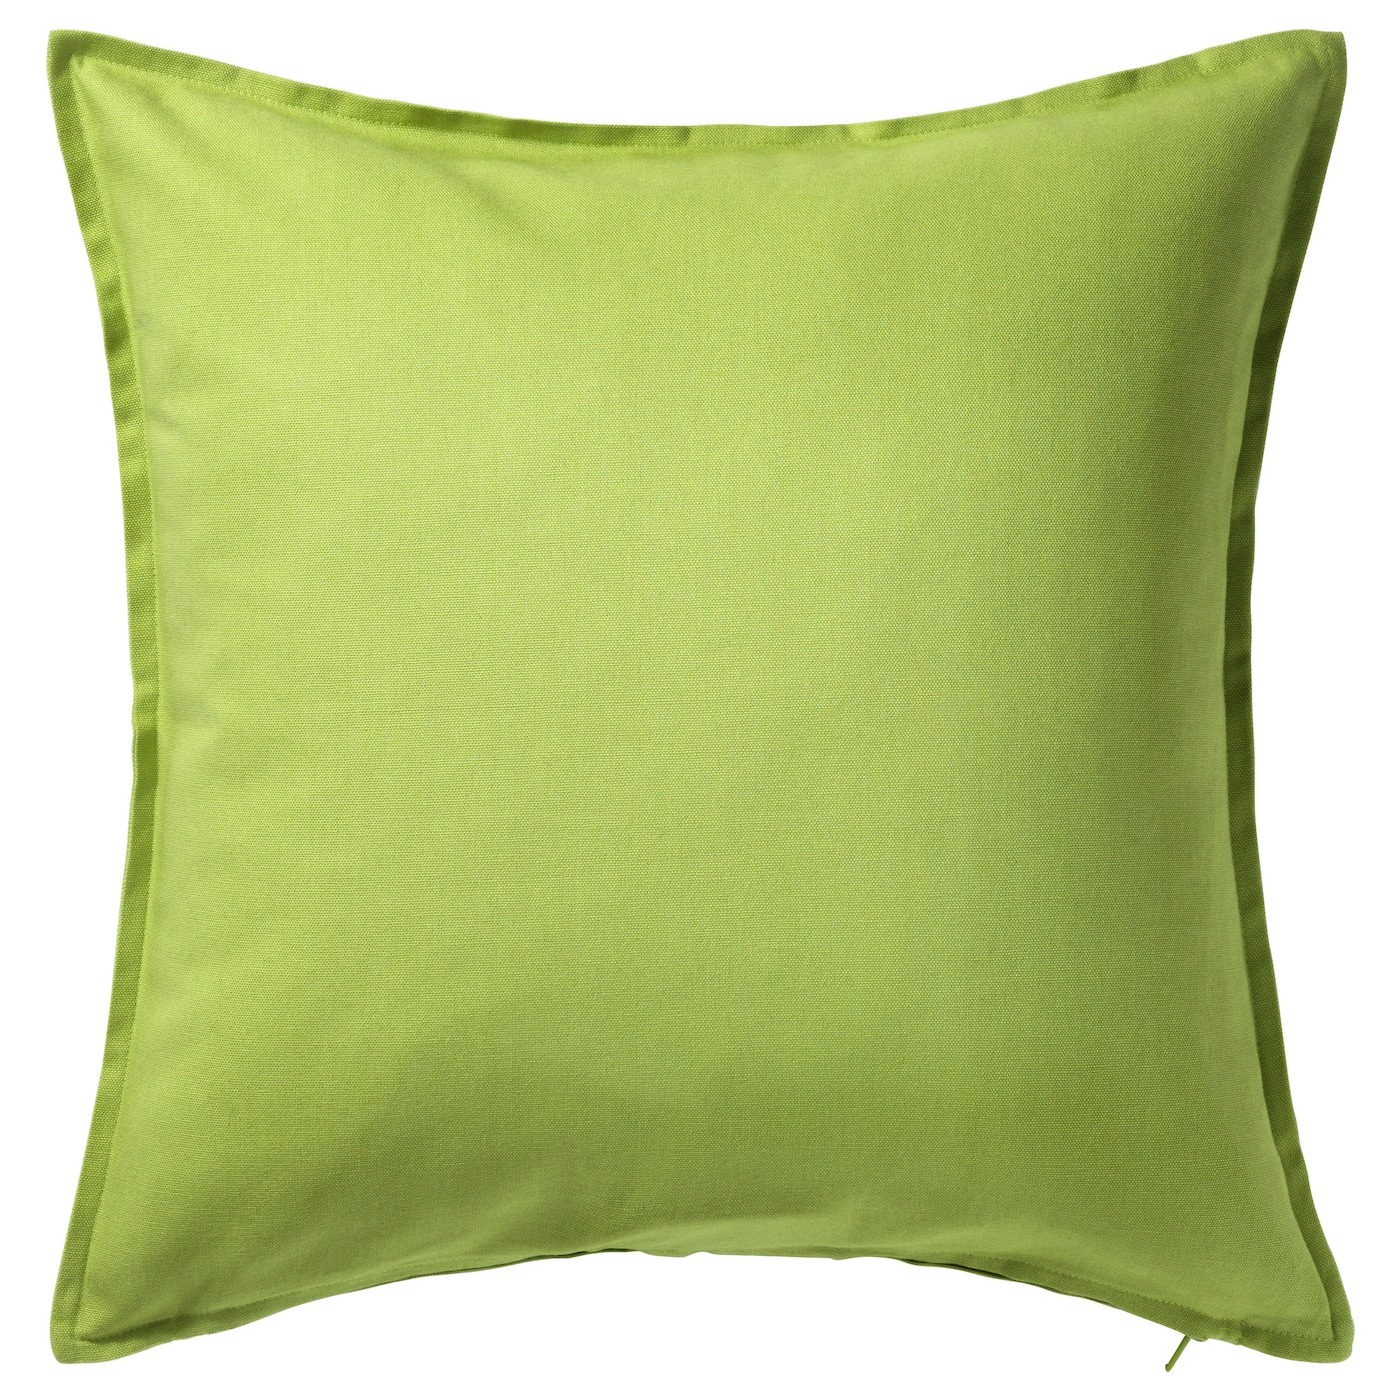 gurli cushion cover green 50x50 cm ikea. Black Bedroom Furniture Sets. Home Design Ideas